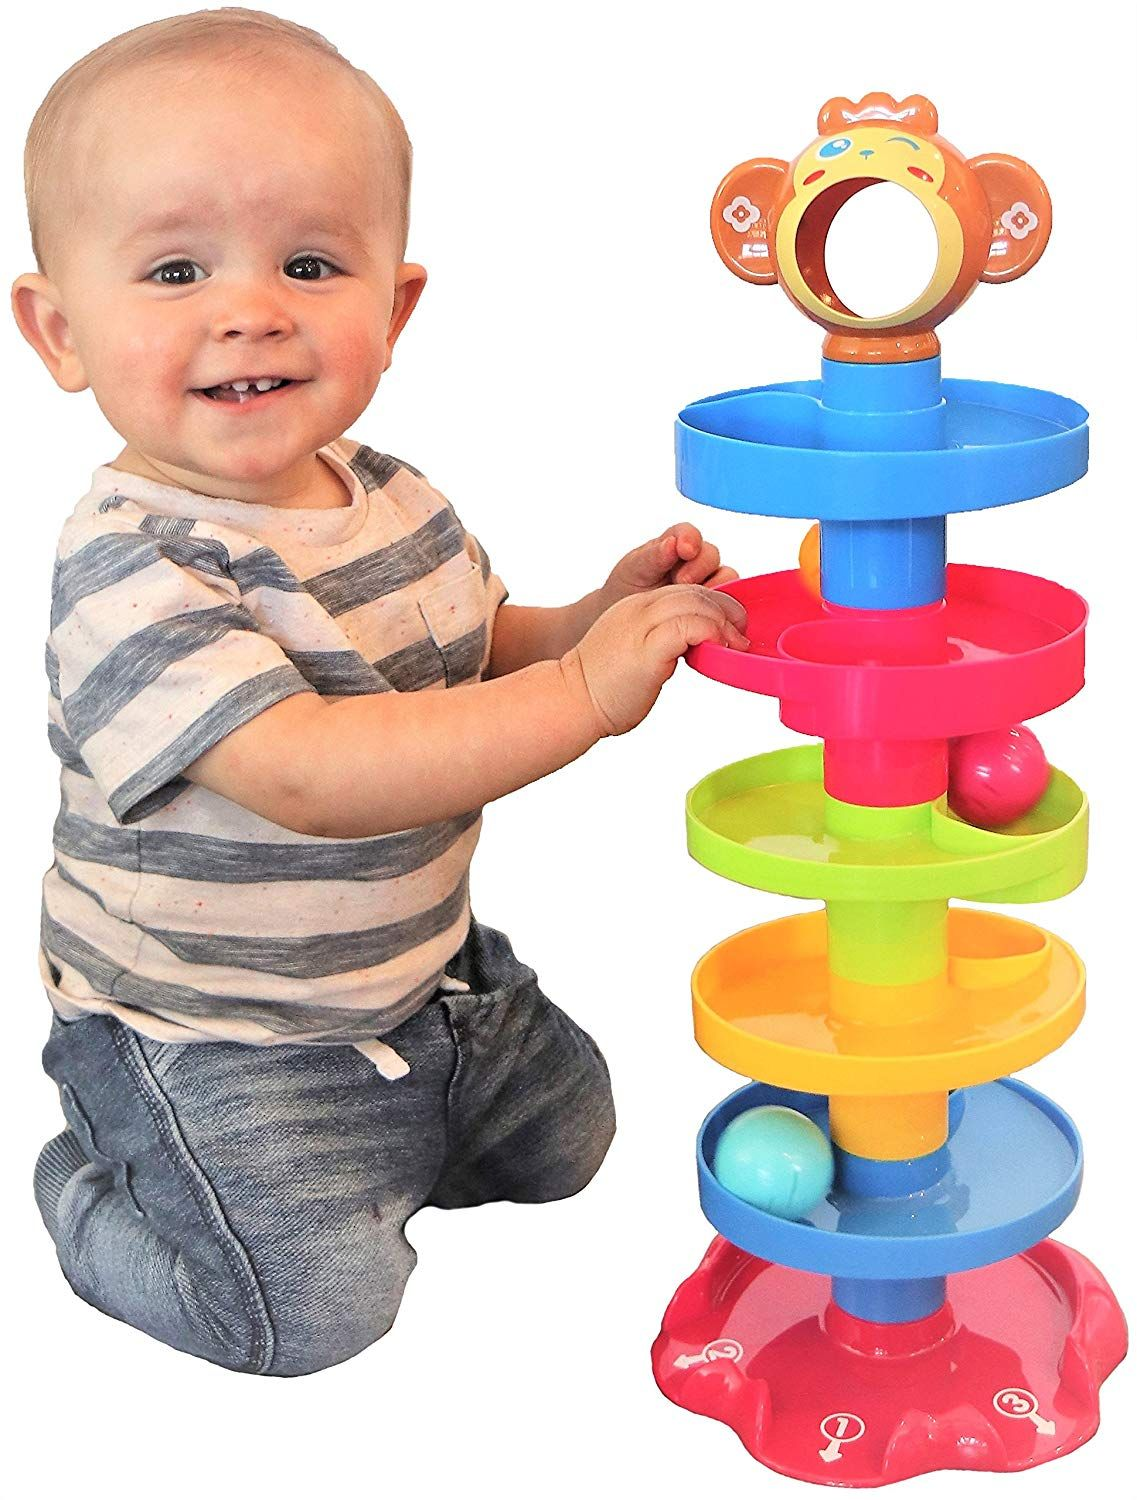 CC O Play Monkey Ball Drop Toy for Babies and Toddlers ...